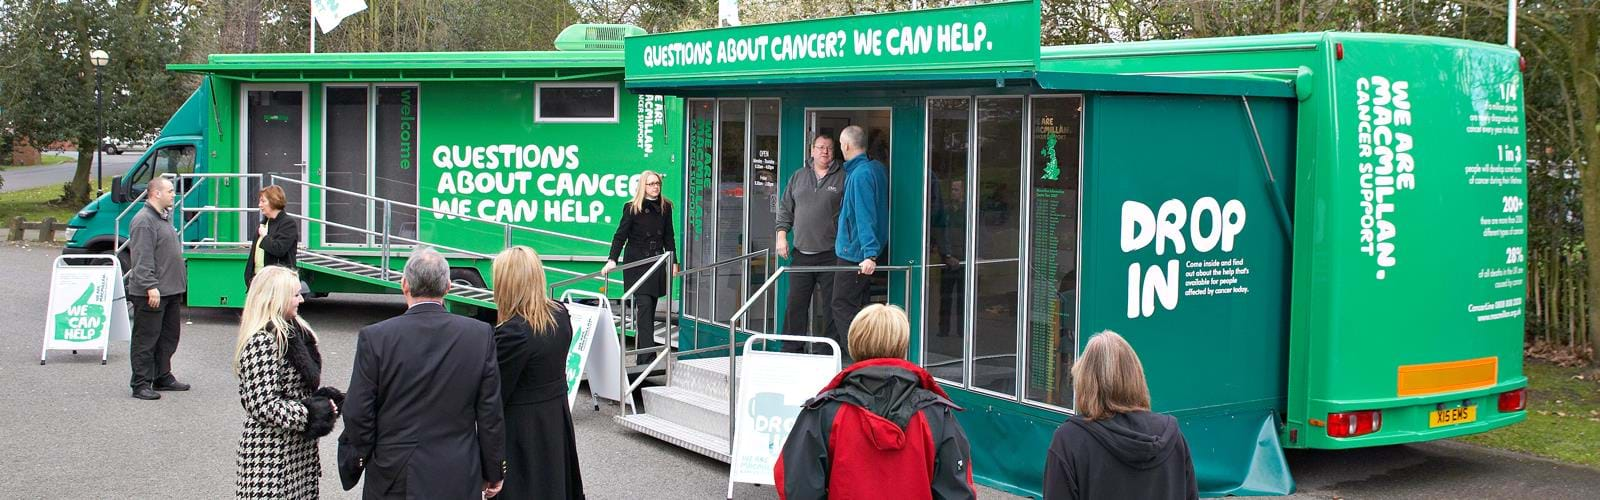 Mobile Cancer Support Unit Macmillian